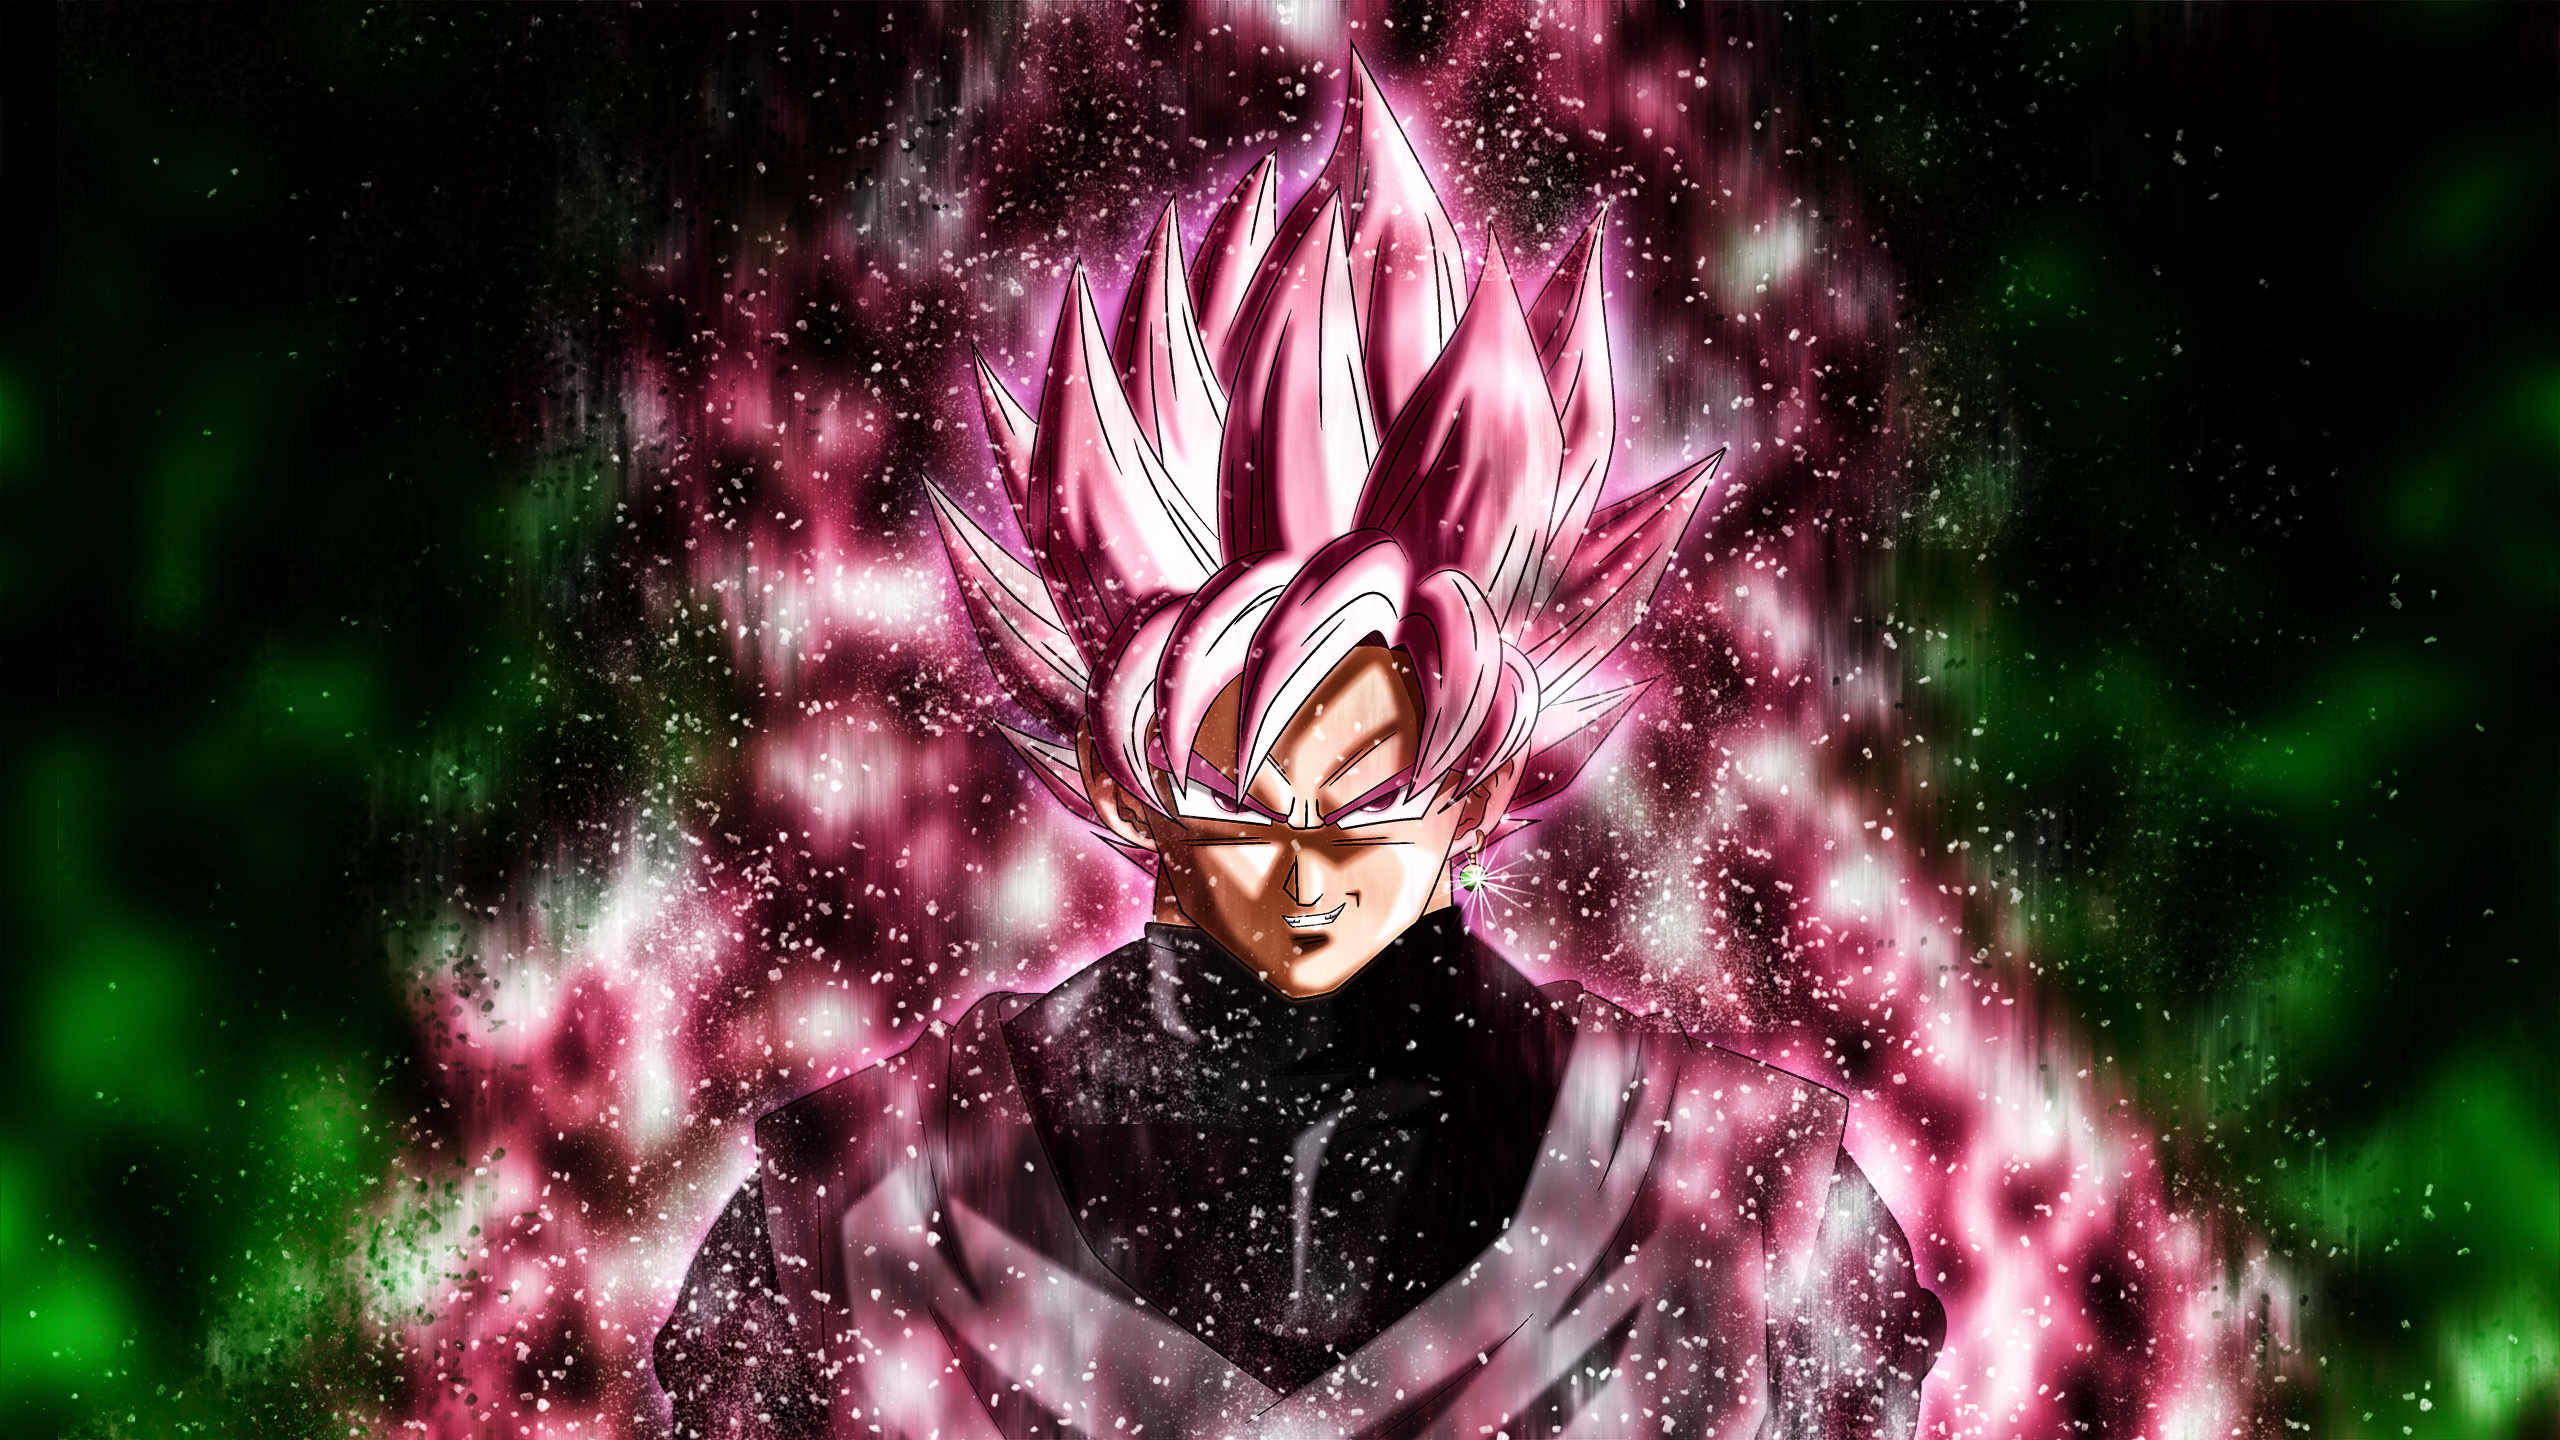 Hd Wallpaper Goku Black Super Saiyan Rose 627473 Hd